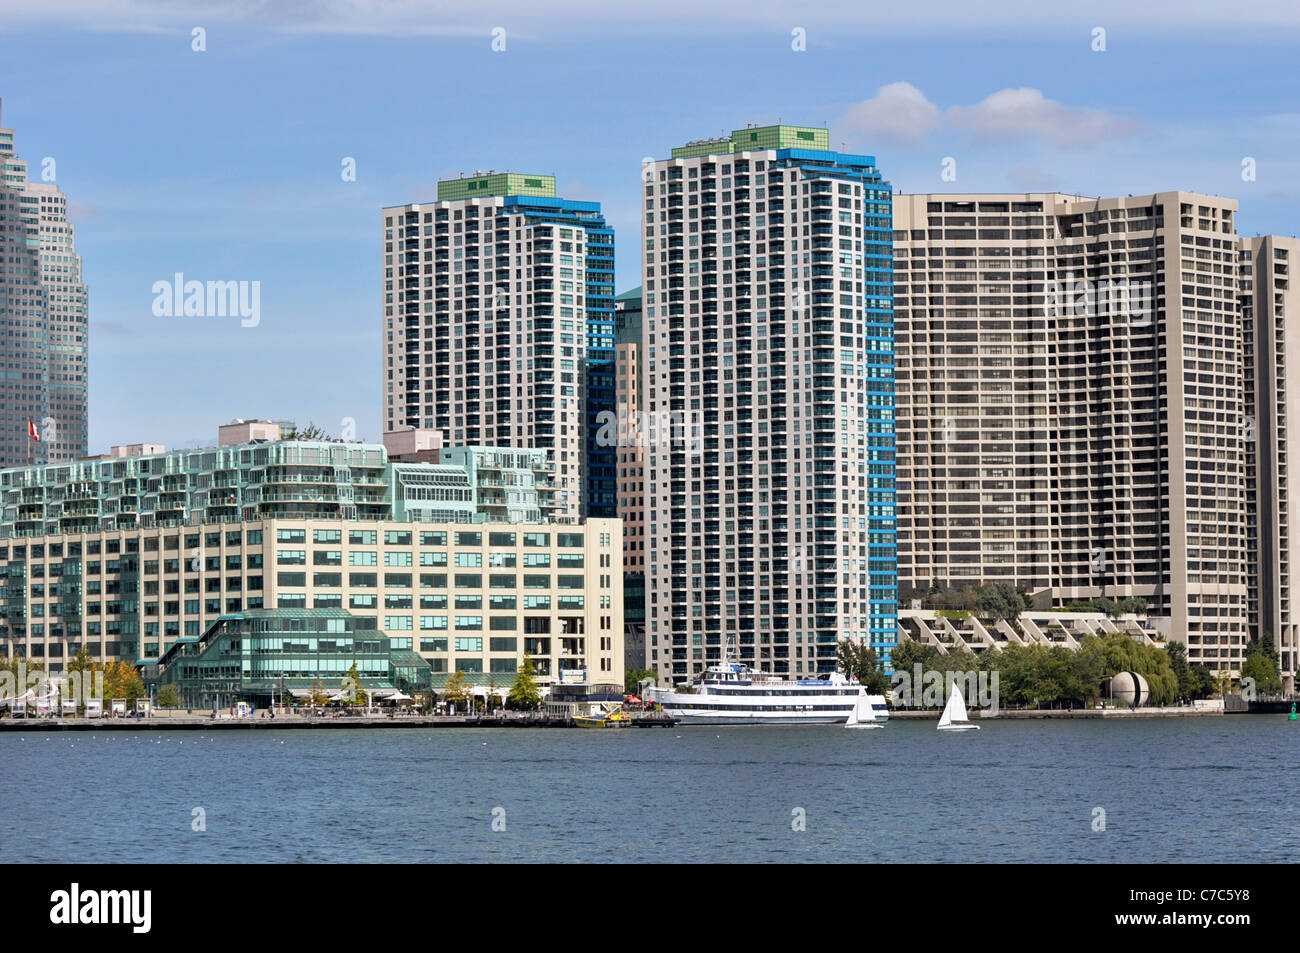 Toronto Harbourfront, Queens Quay, Condos on the Waterfront - Stock Image